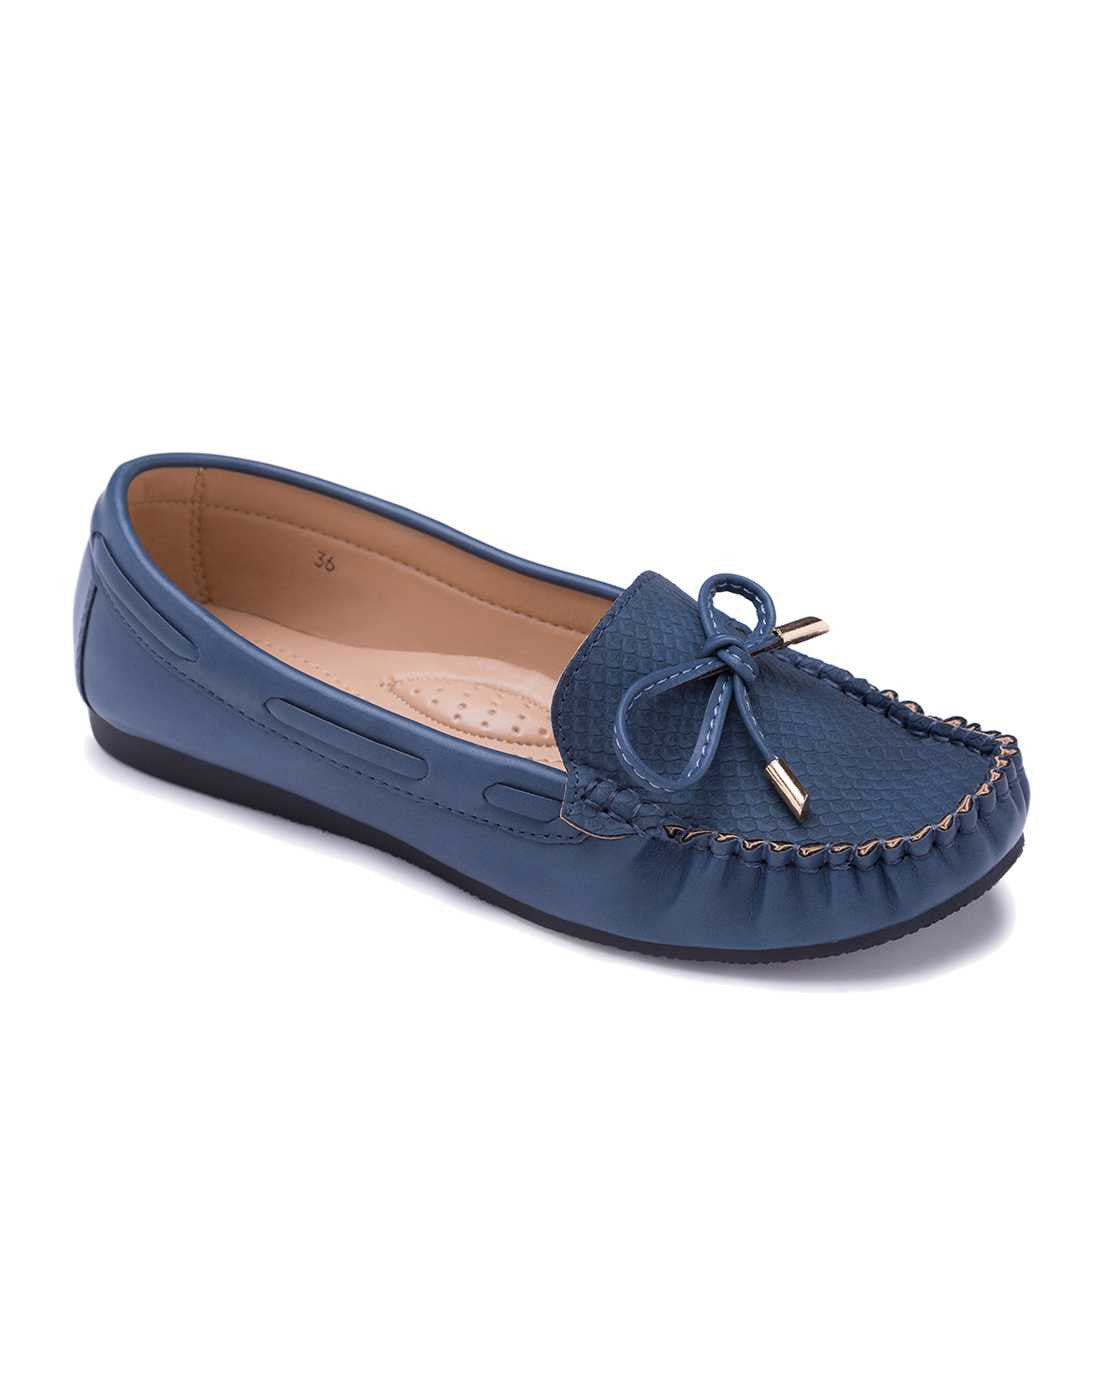 Classic Navy Blue Loafers